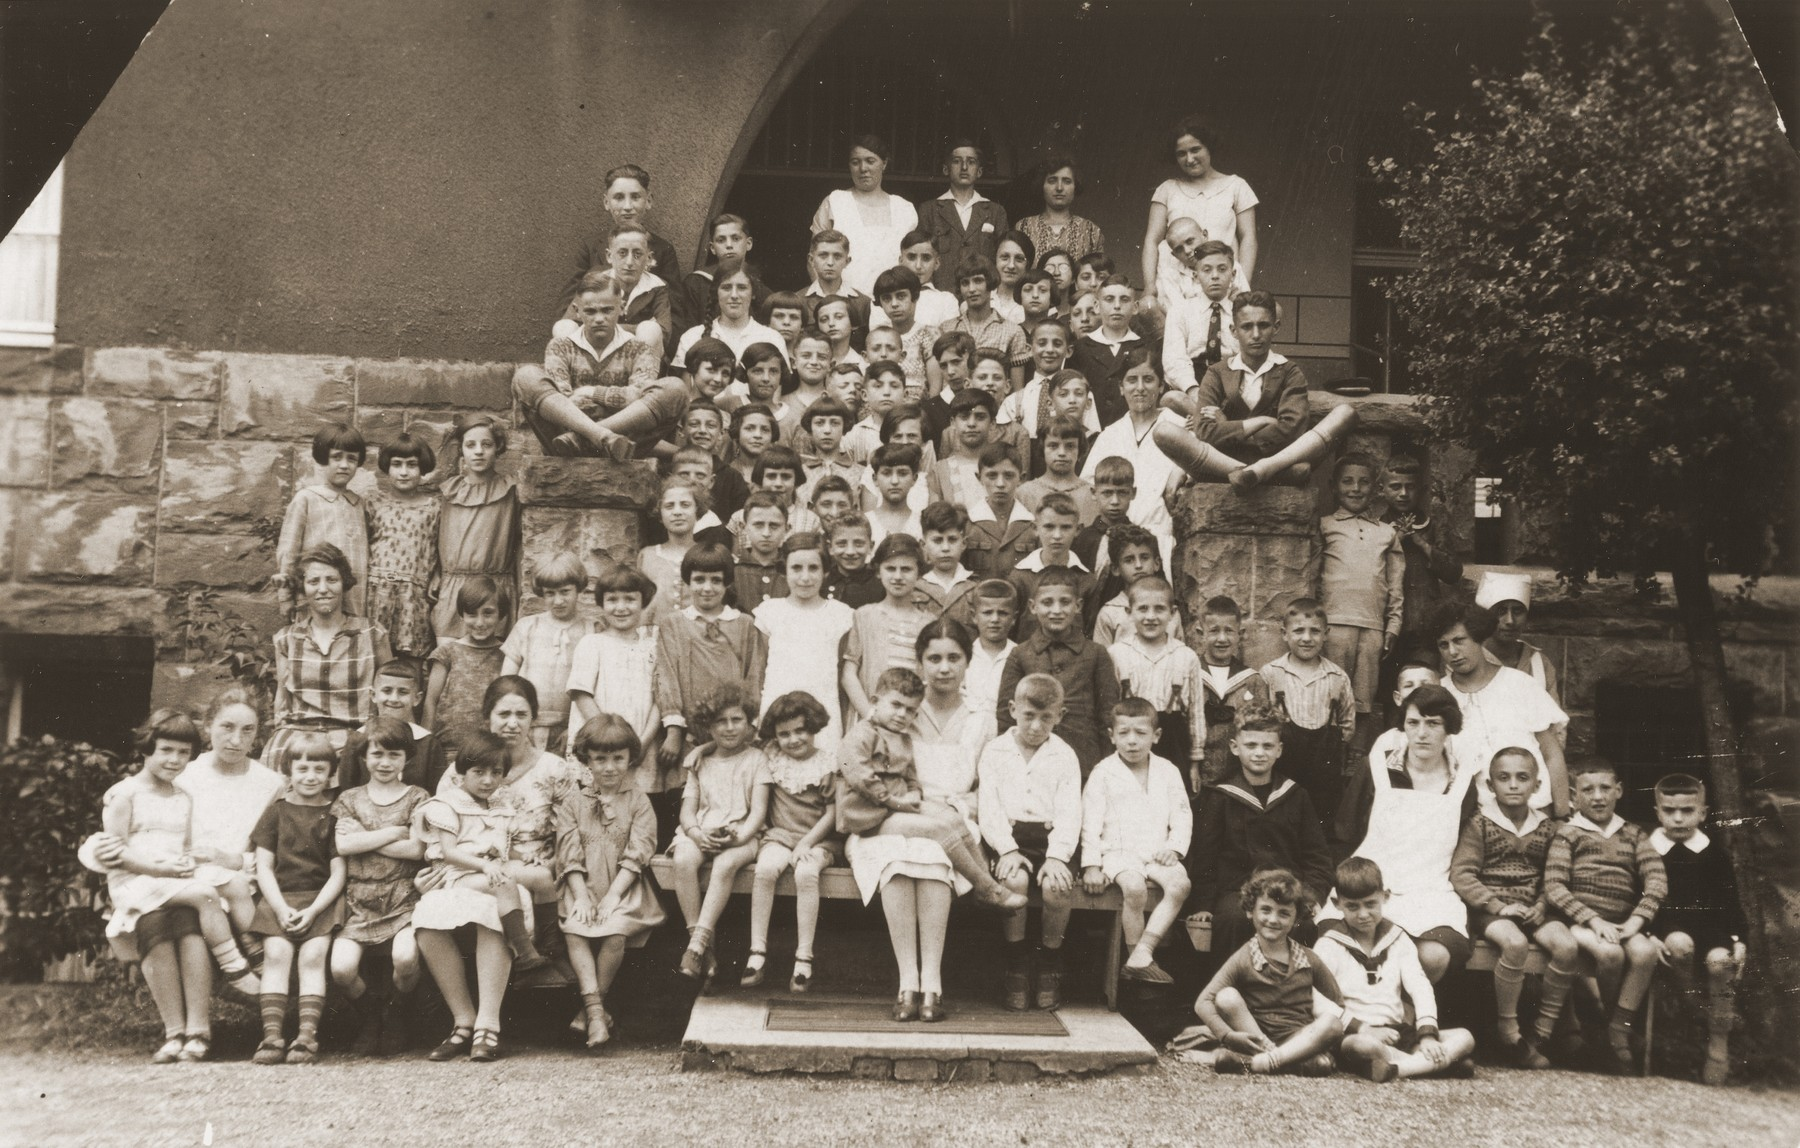 Group portrait of children at a Jewish summer camp.    Pictured in the center is Gerd Zwienicki.  In front of him is Hannah Steinberg.